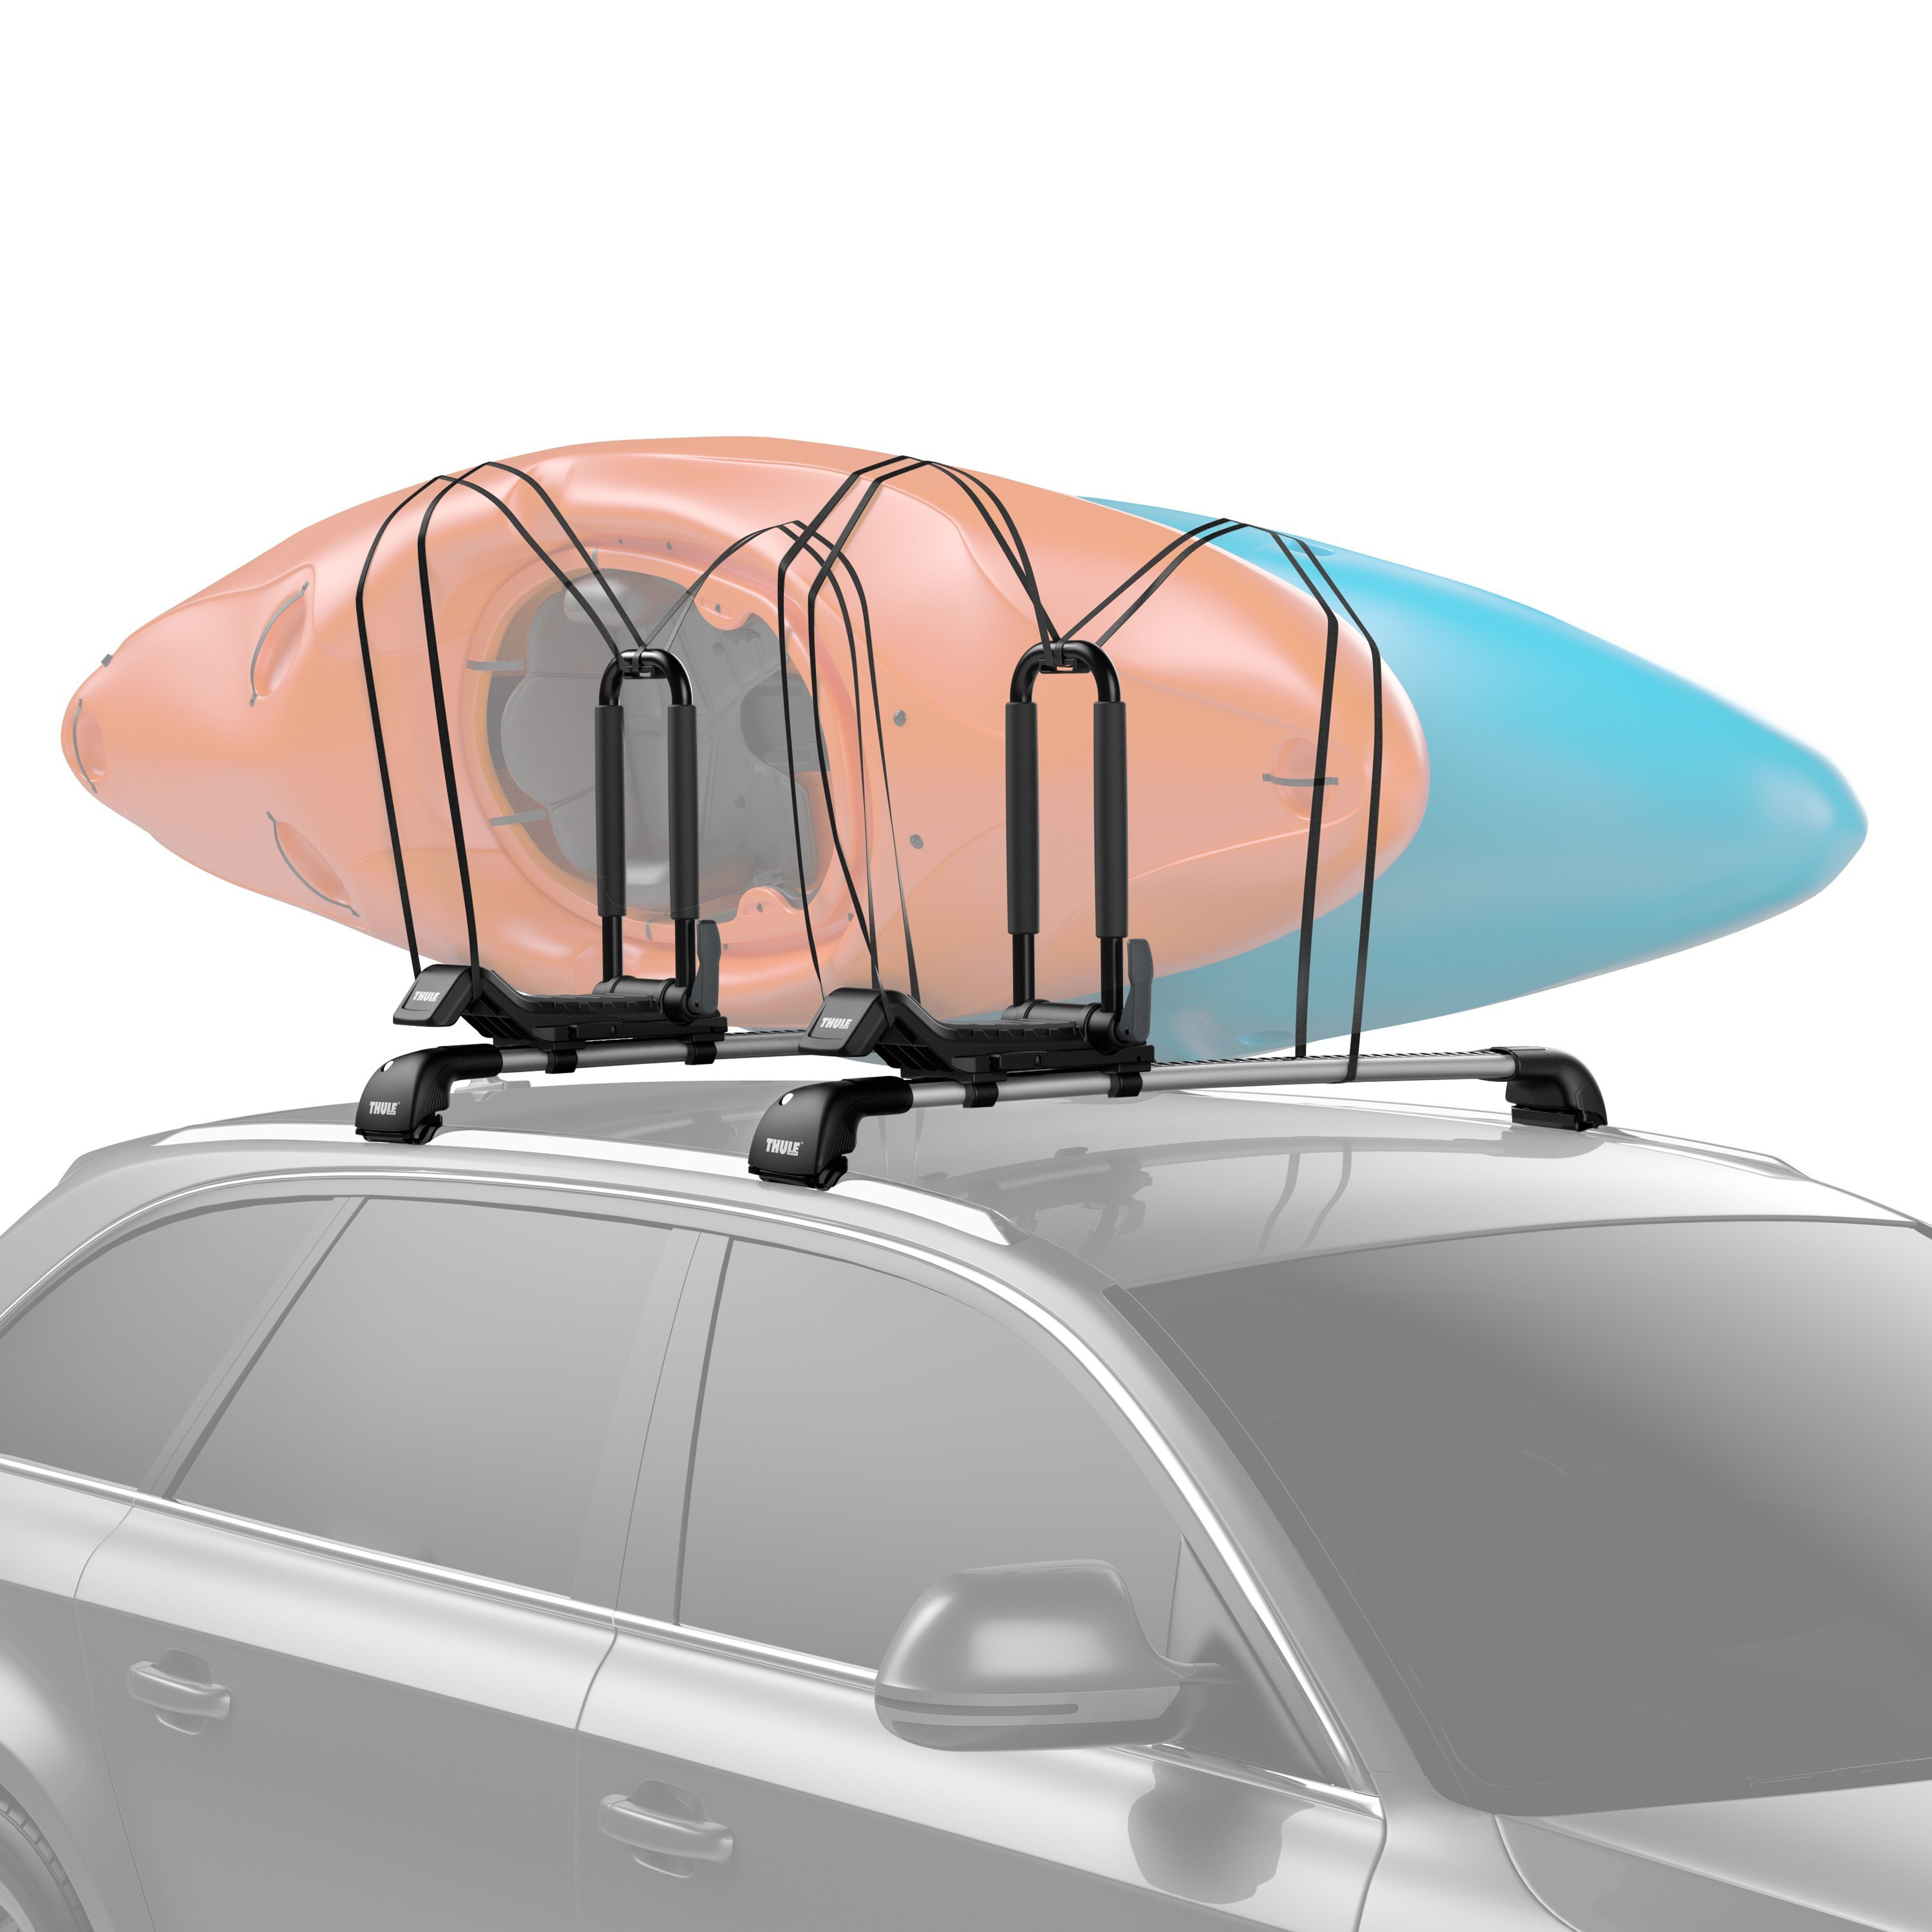 rack outback thule subaru thuleaccessories roof guides kayak t accesories accessories